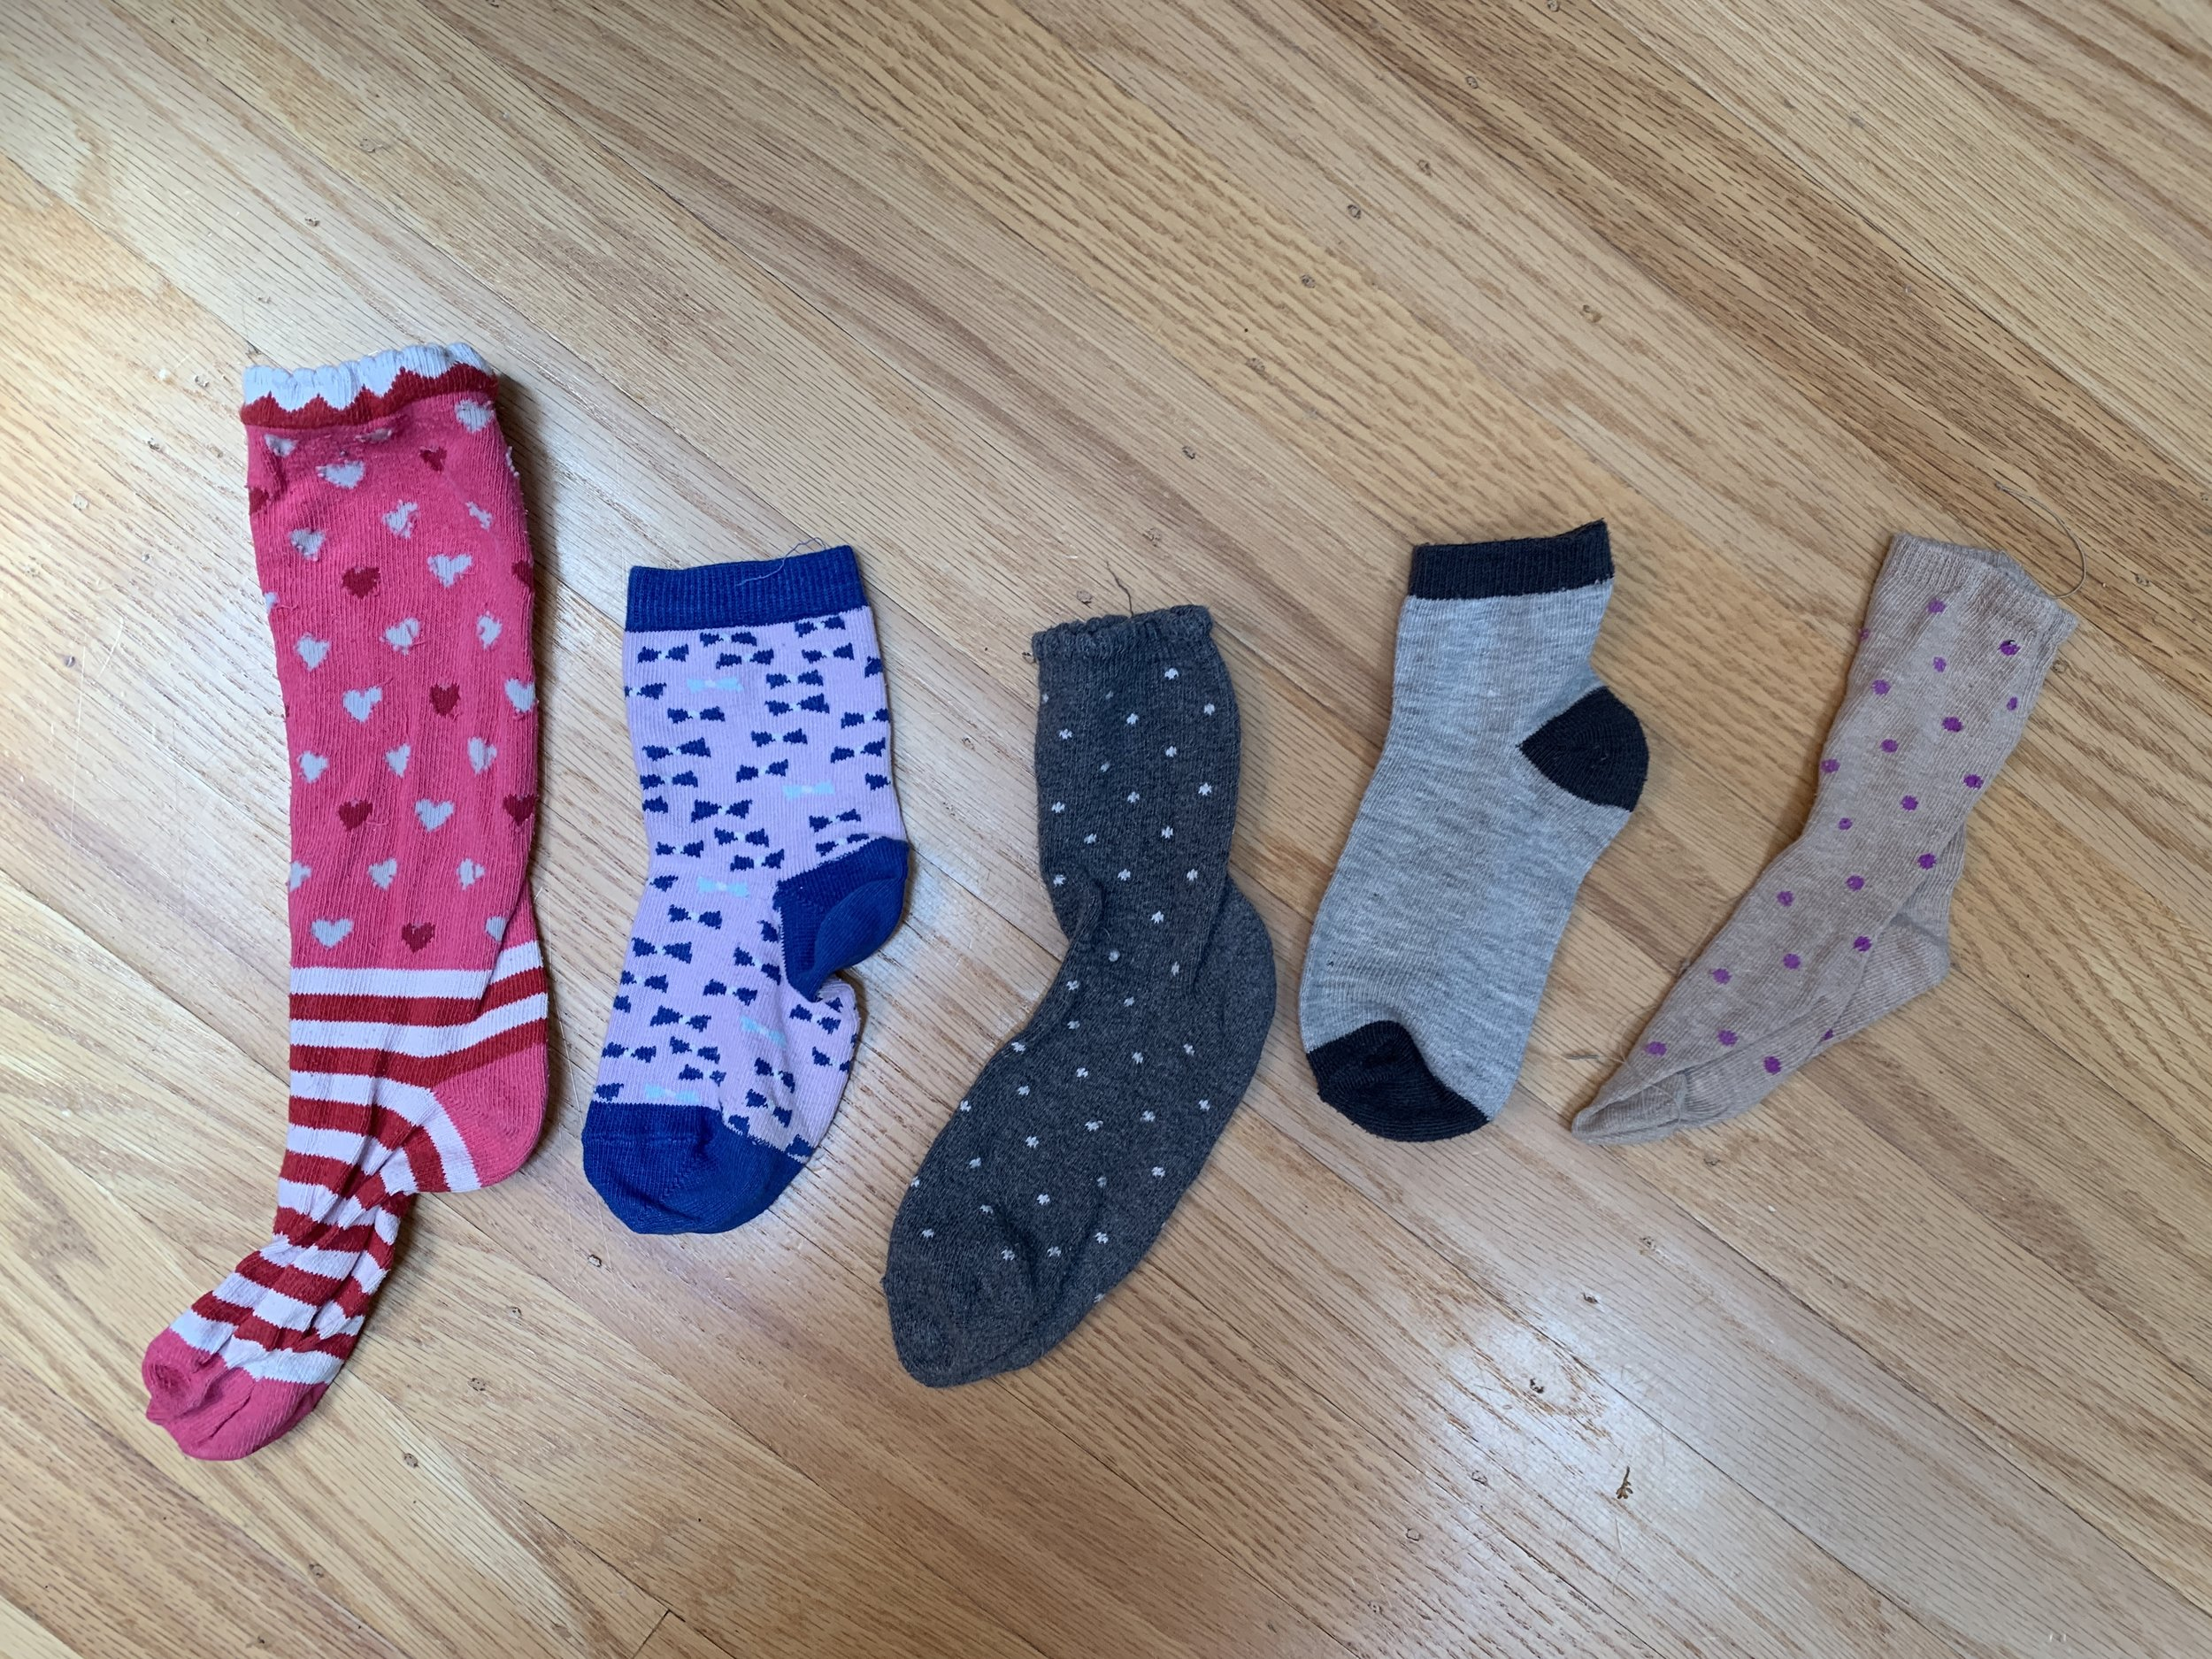 Cute socks sets from Target? DON'T DO IT.